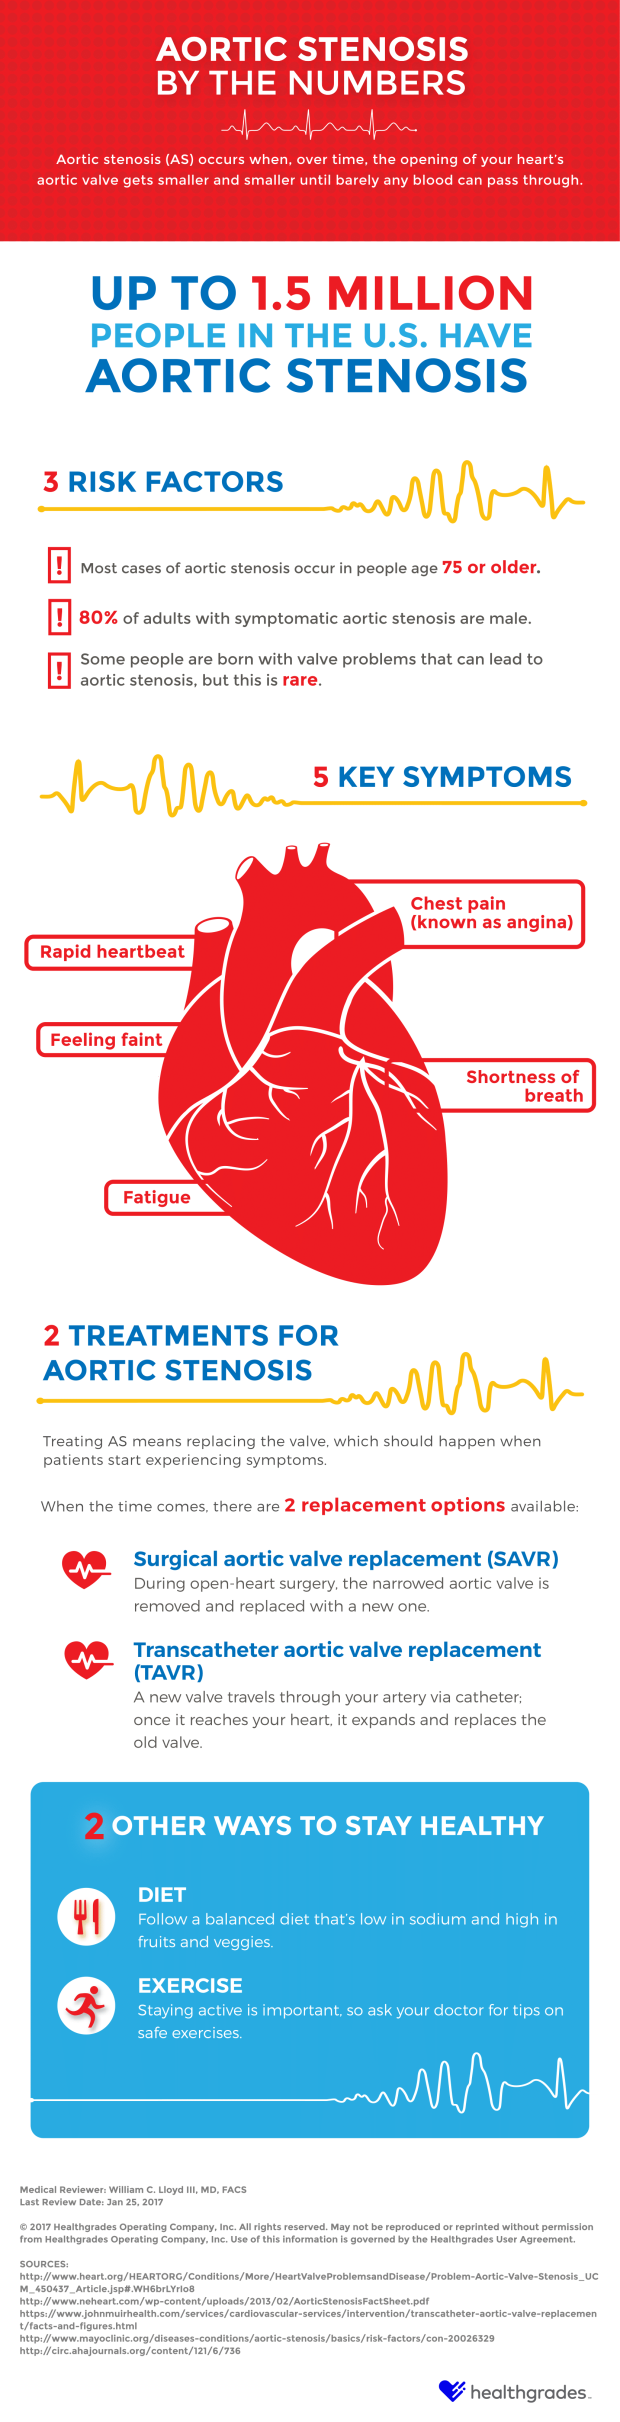 aortic stenosis infographic